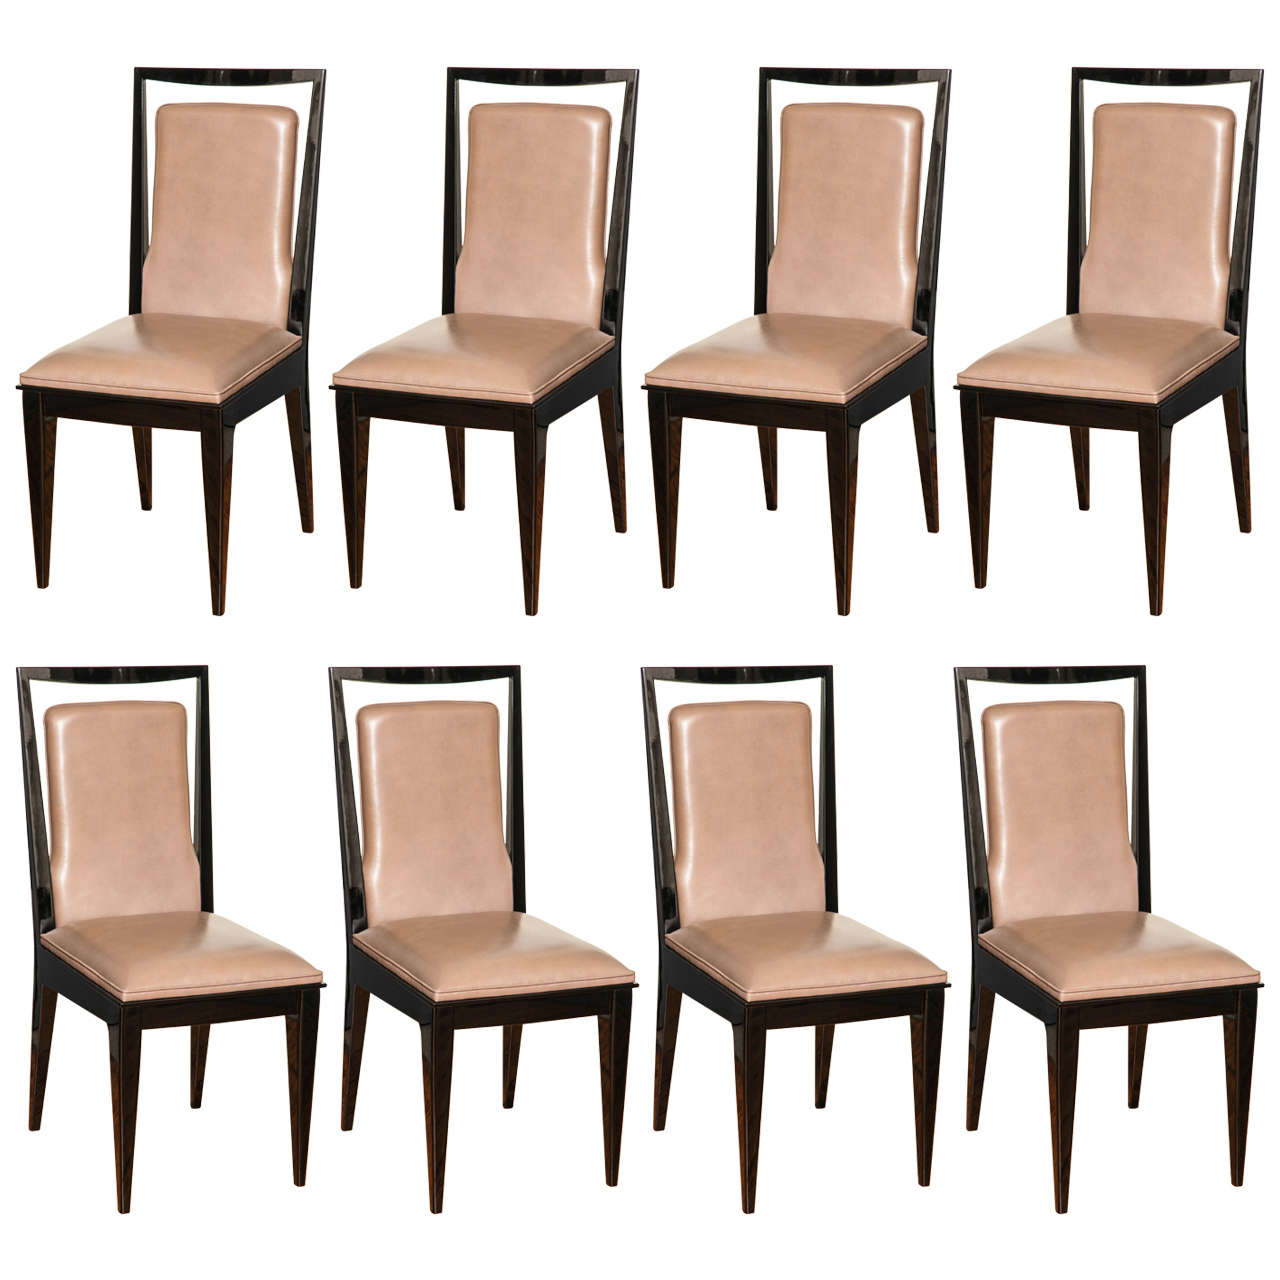 Fabulous Suite Of Eight Modernist Dining Chairs At 1stdibs